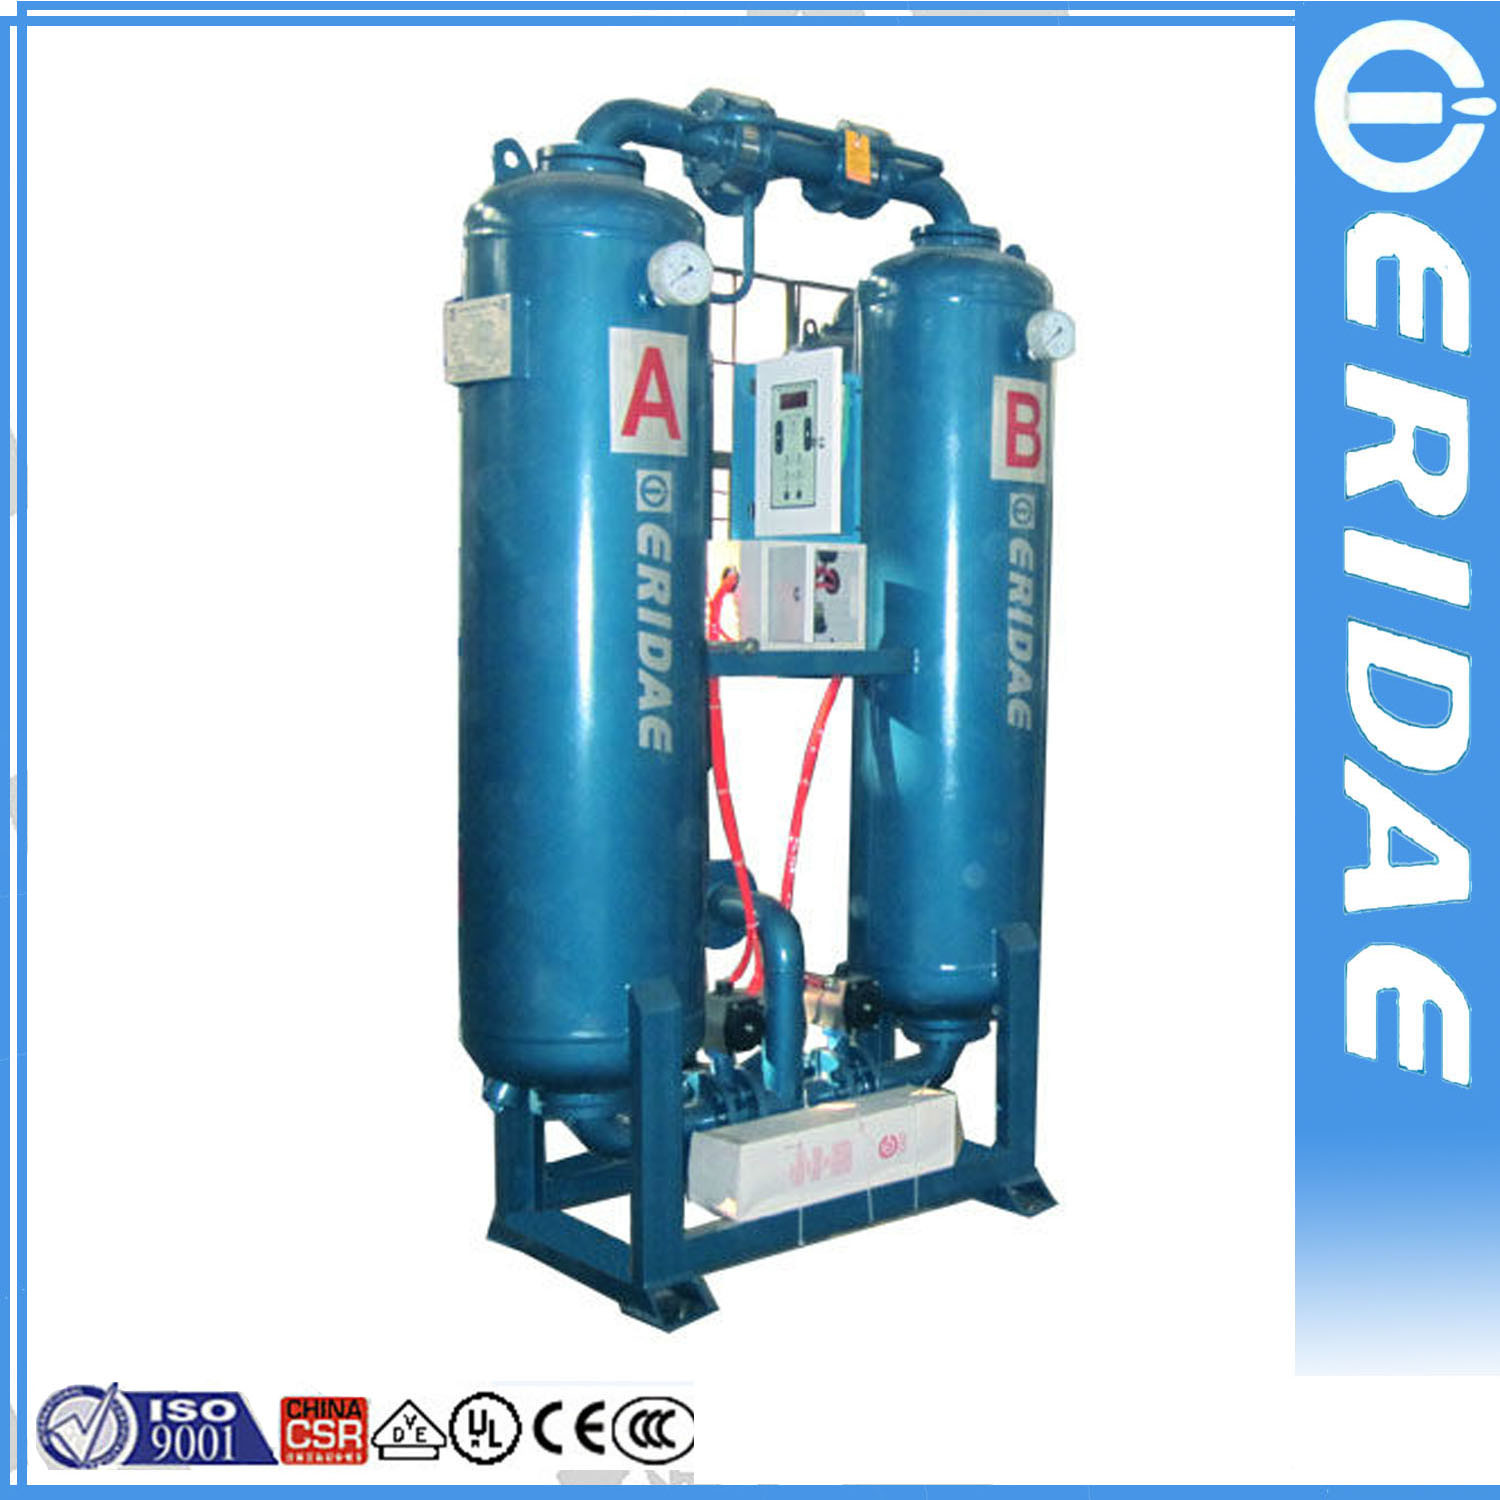 Air Dryer For Air Compressor >> China Hot Selling Heatless Desiccant Adsorption Air Dryer For Air